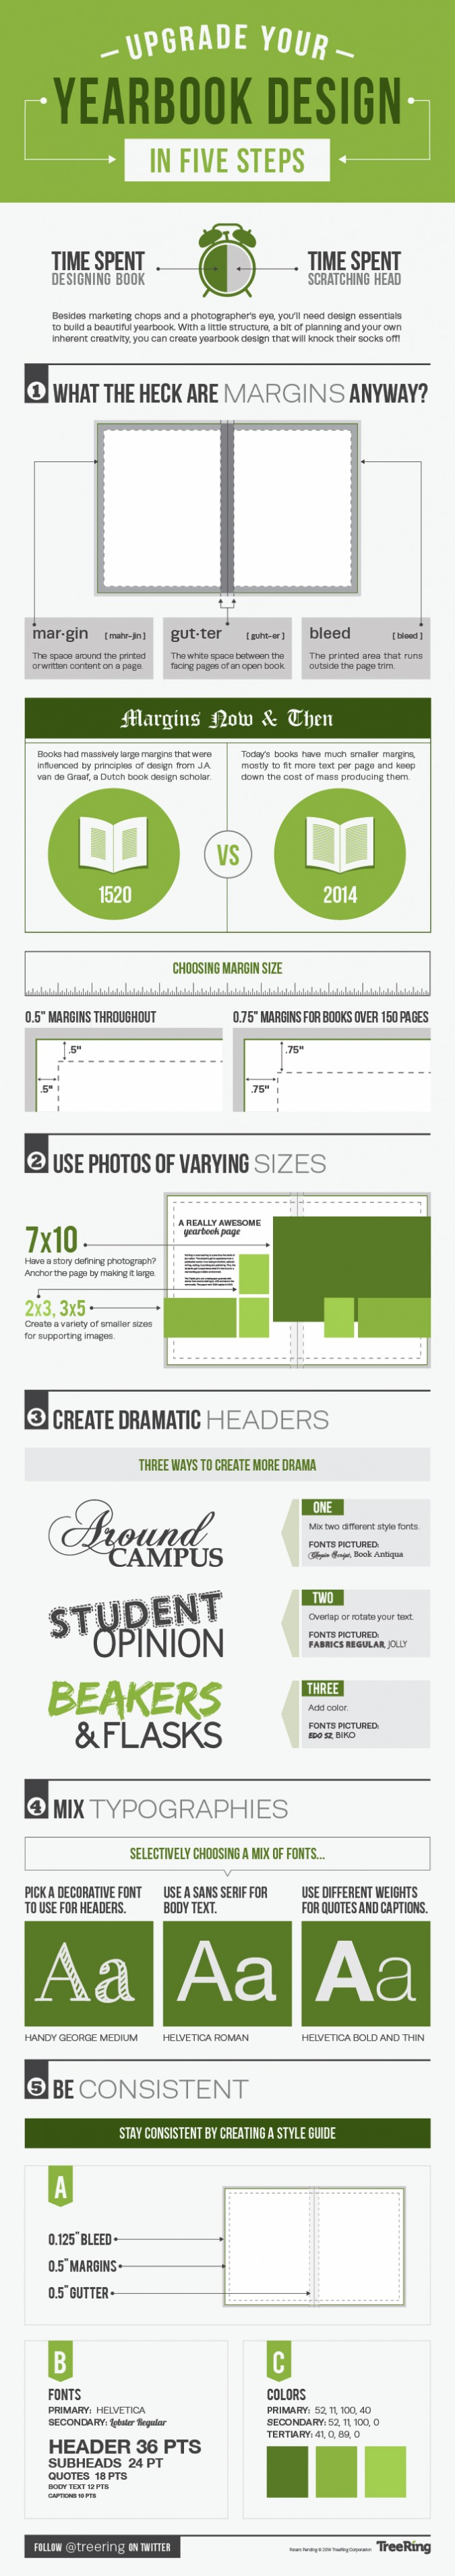 Yearbook_Design_Infographic_Final_680px